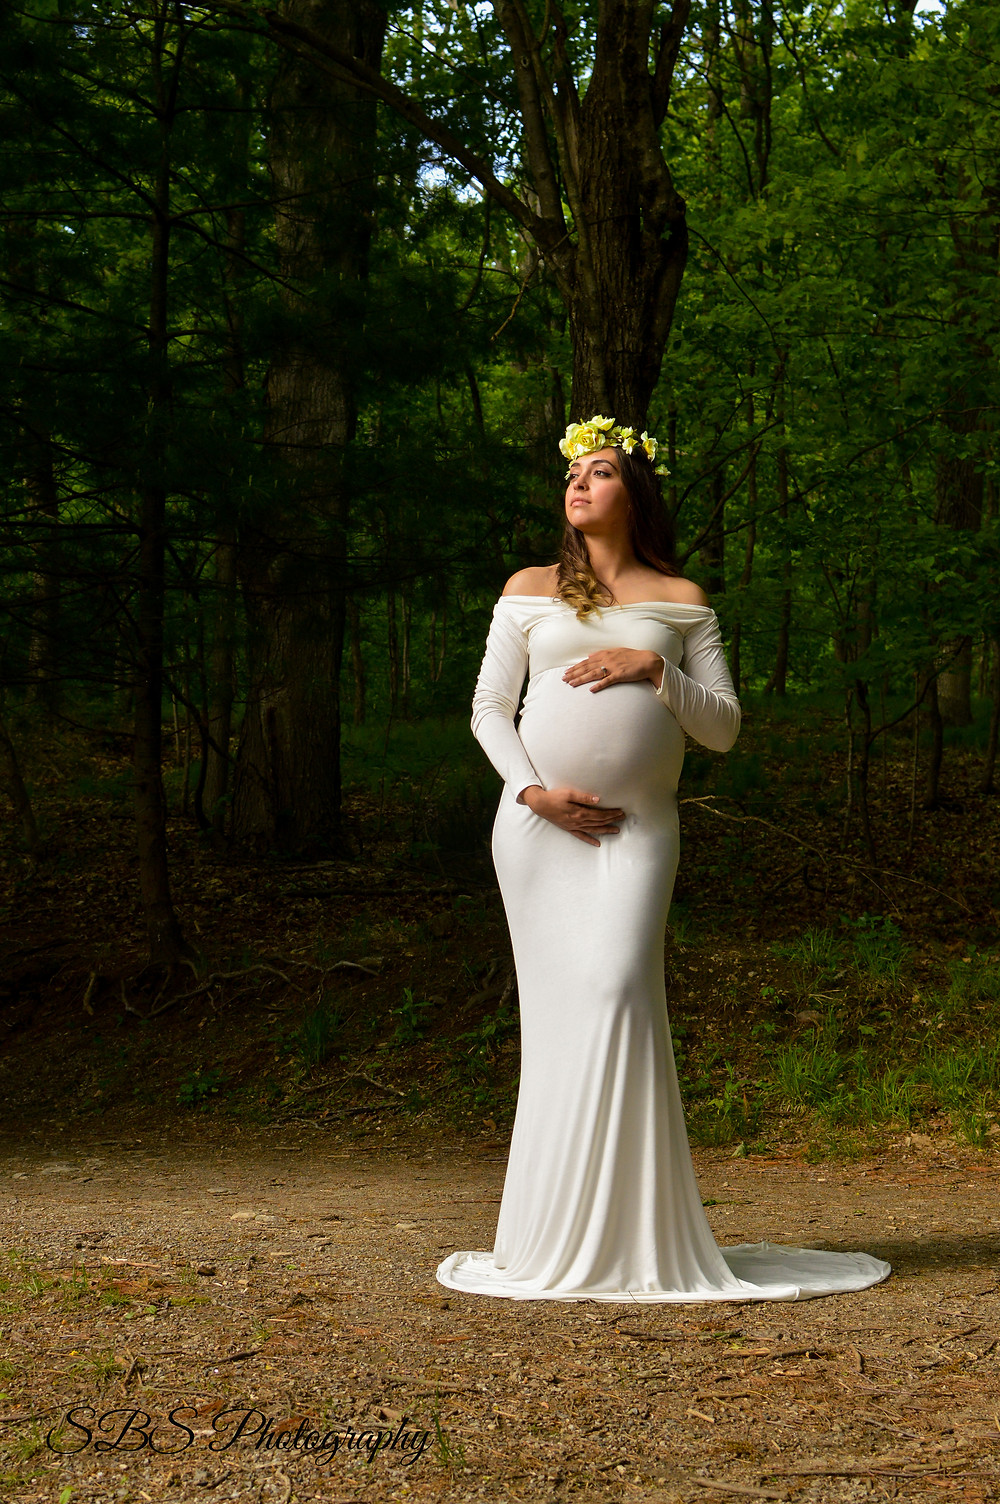 CT Maternity Session, Wolfe Park , Monroe